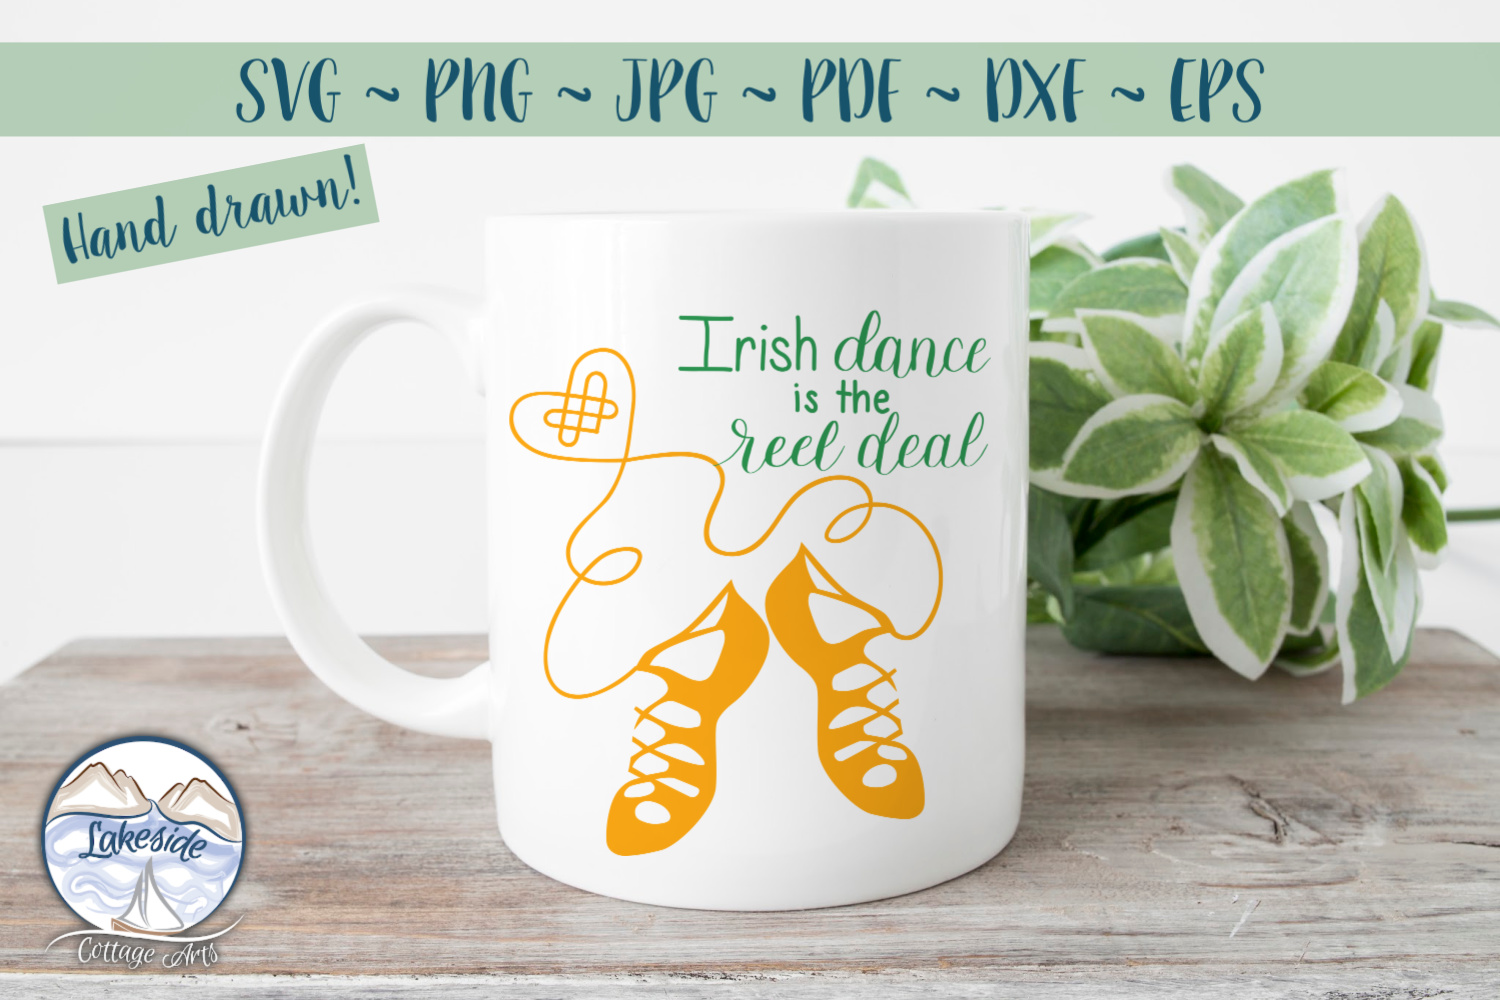 Irish Dance is the Reel Deal SVG Design example image 2